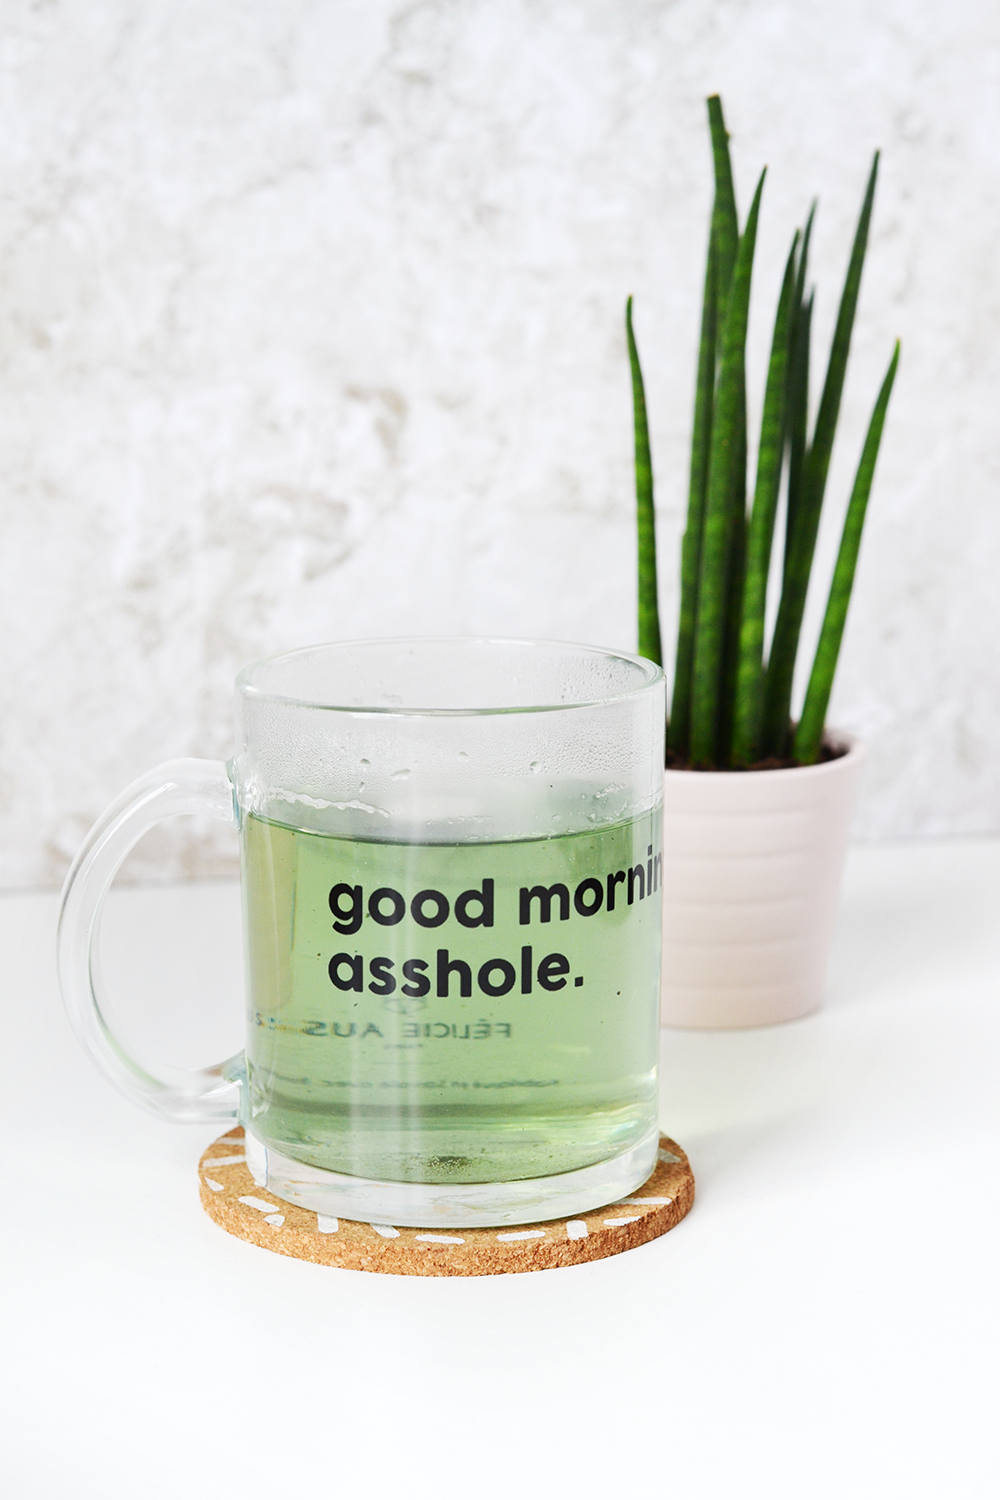 mug - good morning asshole